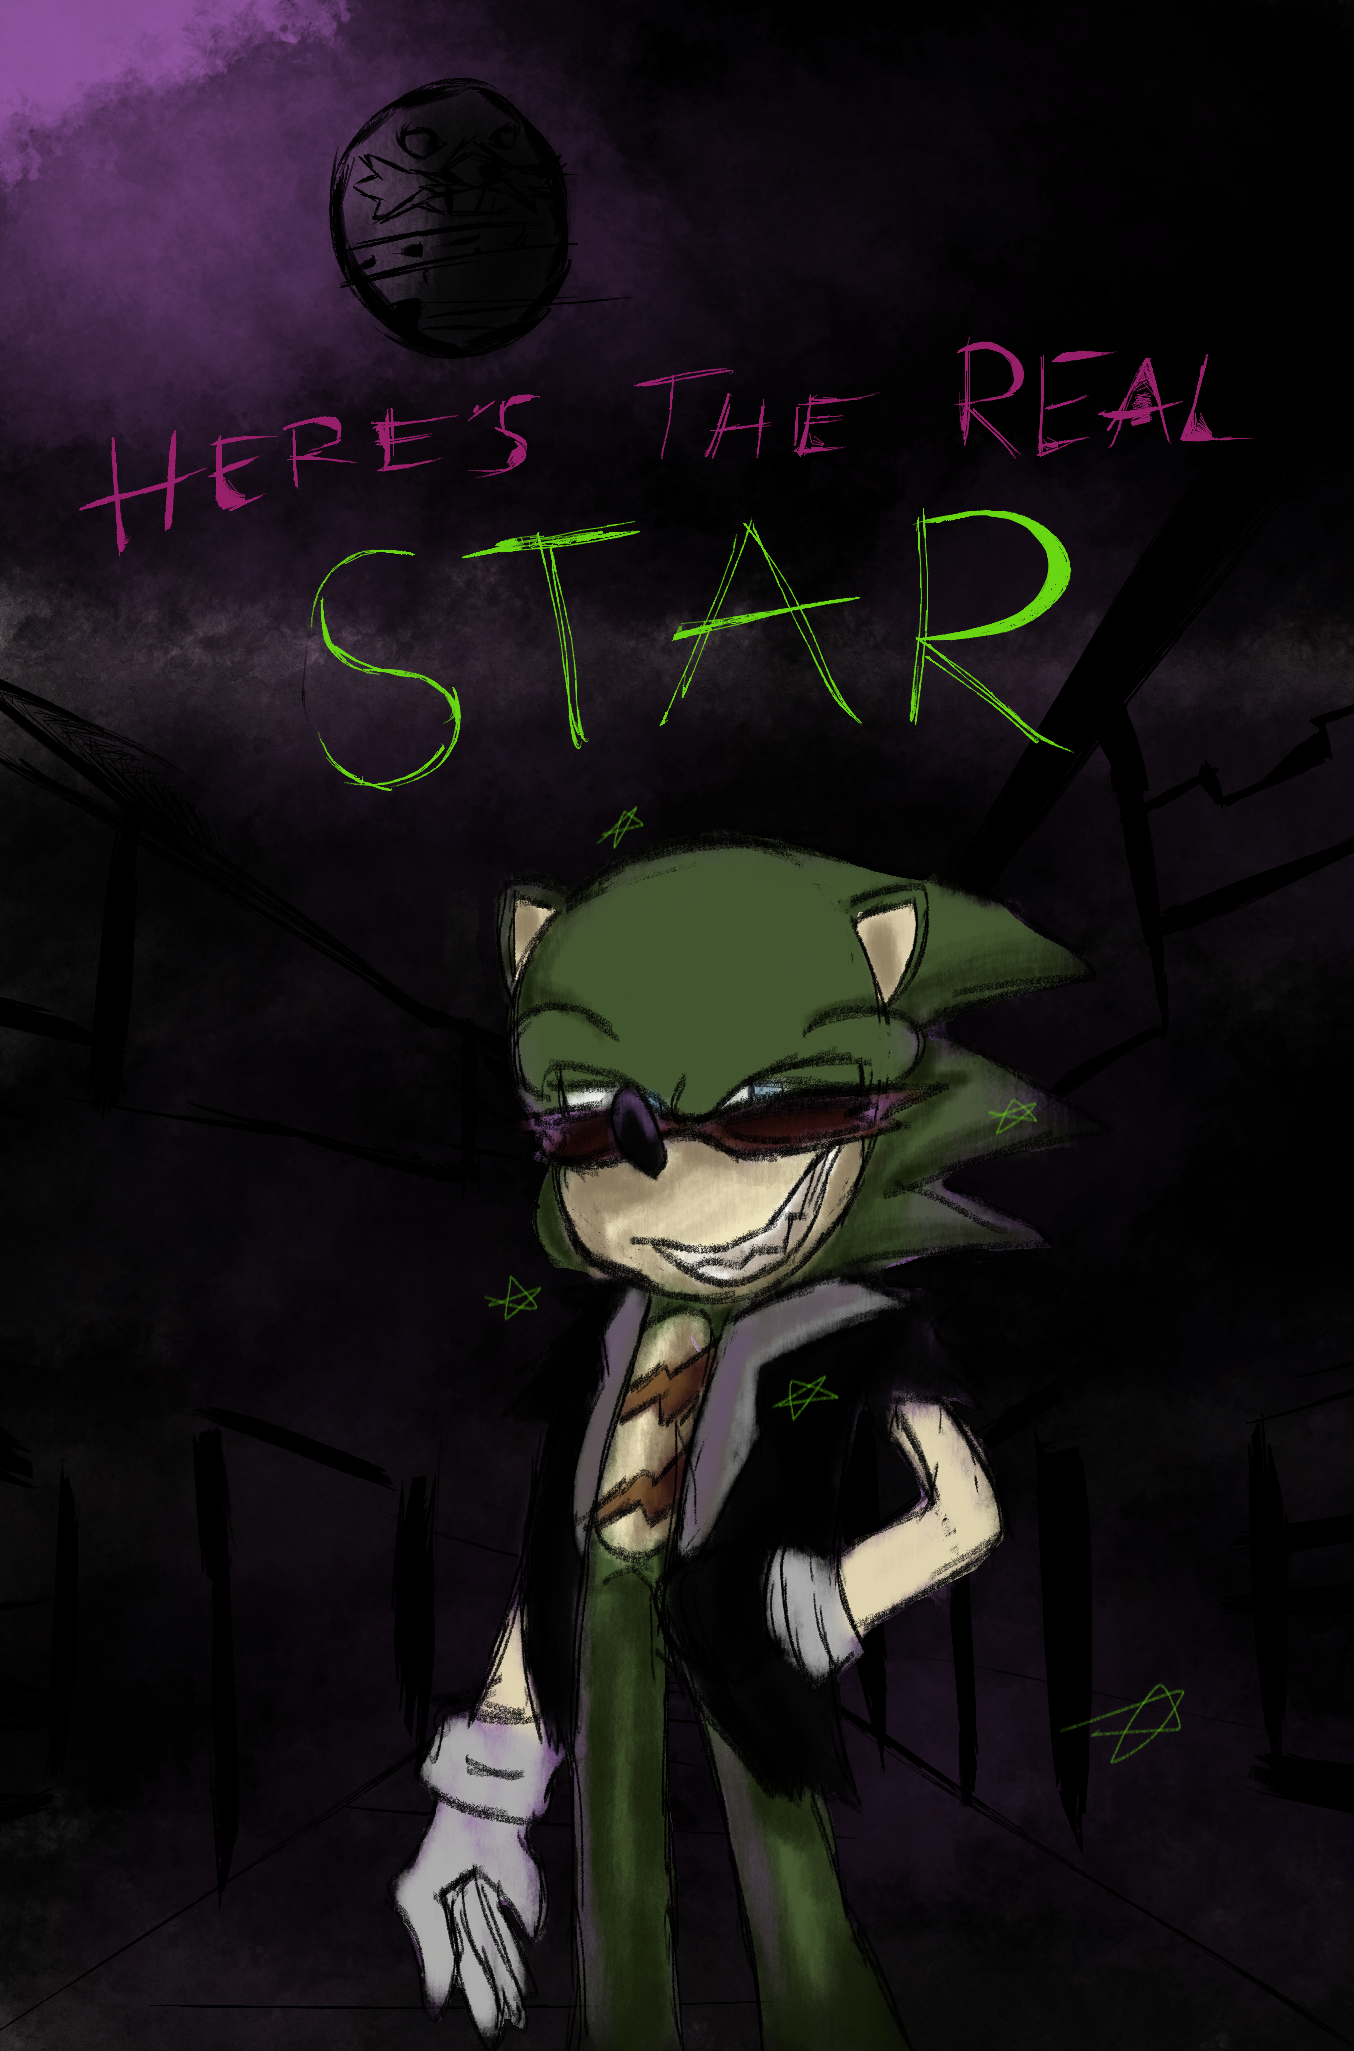 Scourge the STAR